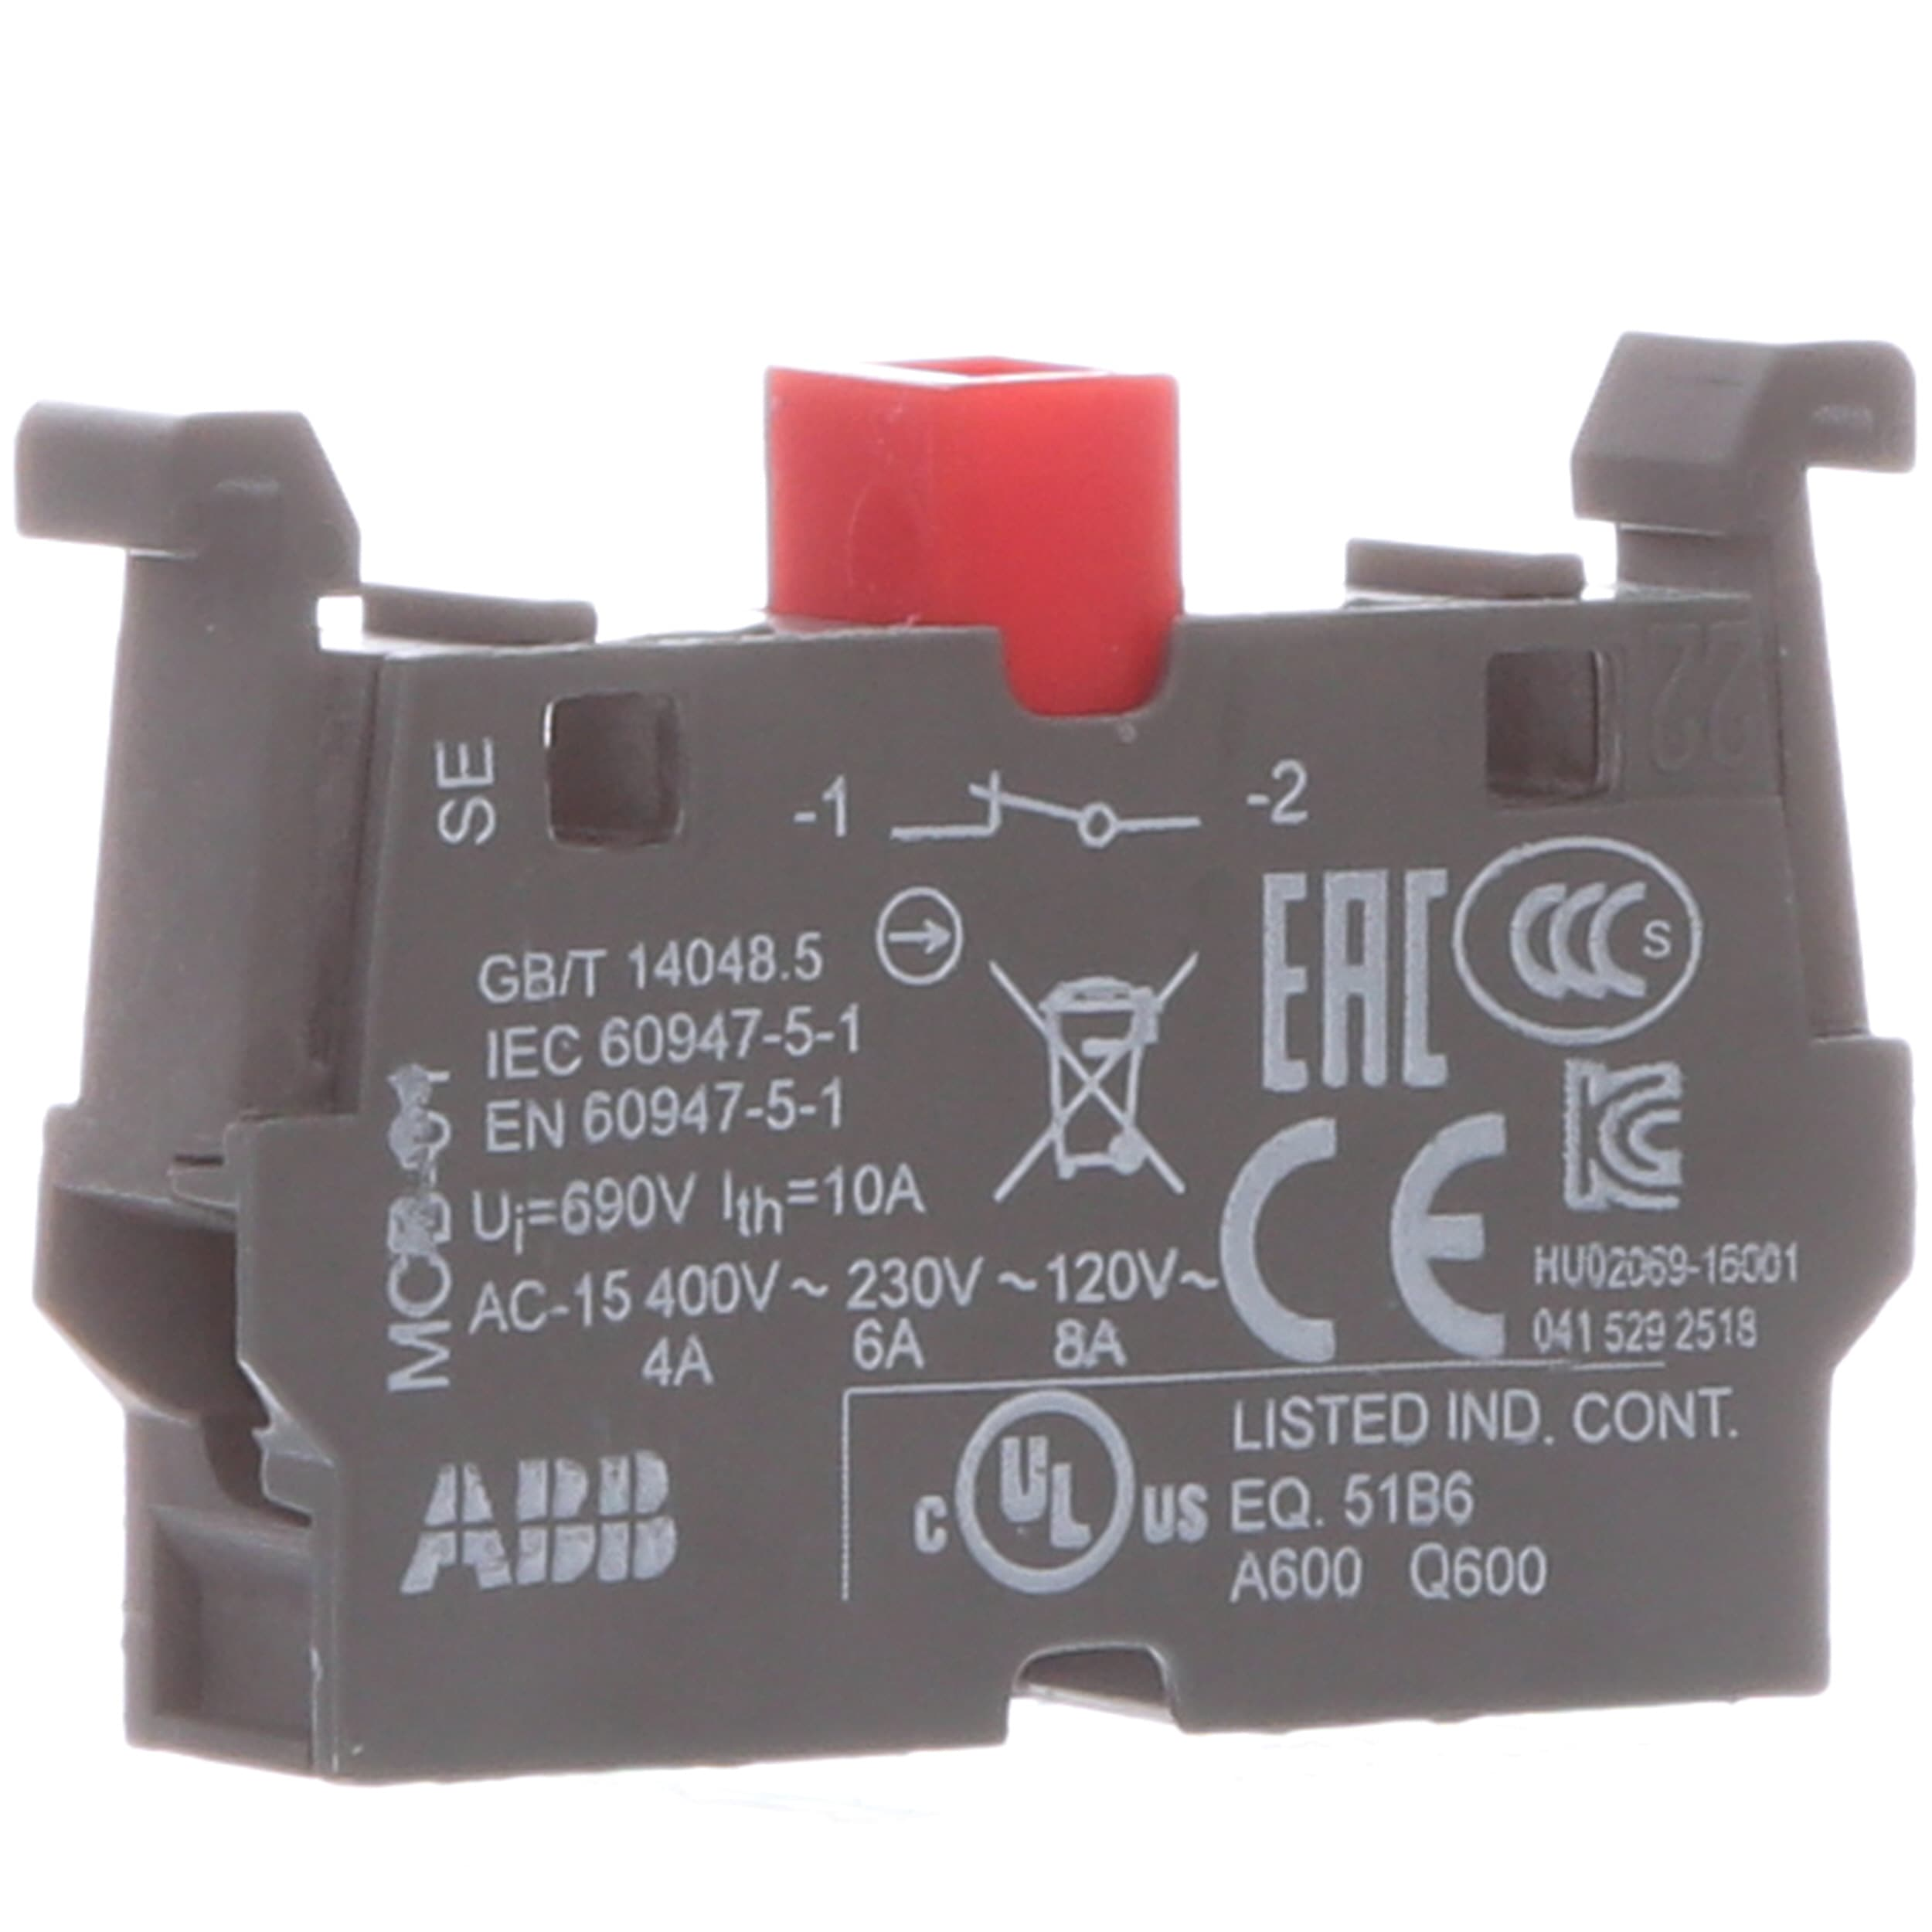 Abb Mcb 01 Contact Blk 1 Ncformerly Sk 616 001 B Allied Vdc Dip Reed Relay All Electronics Corp Automation